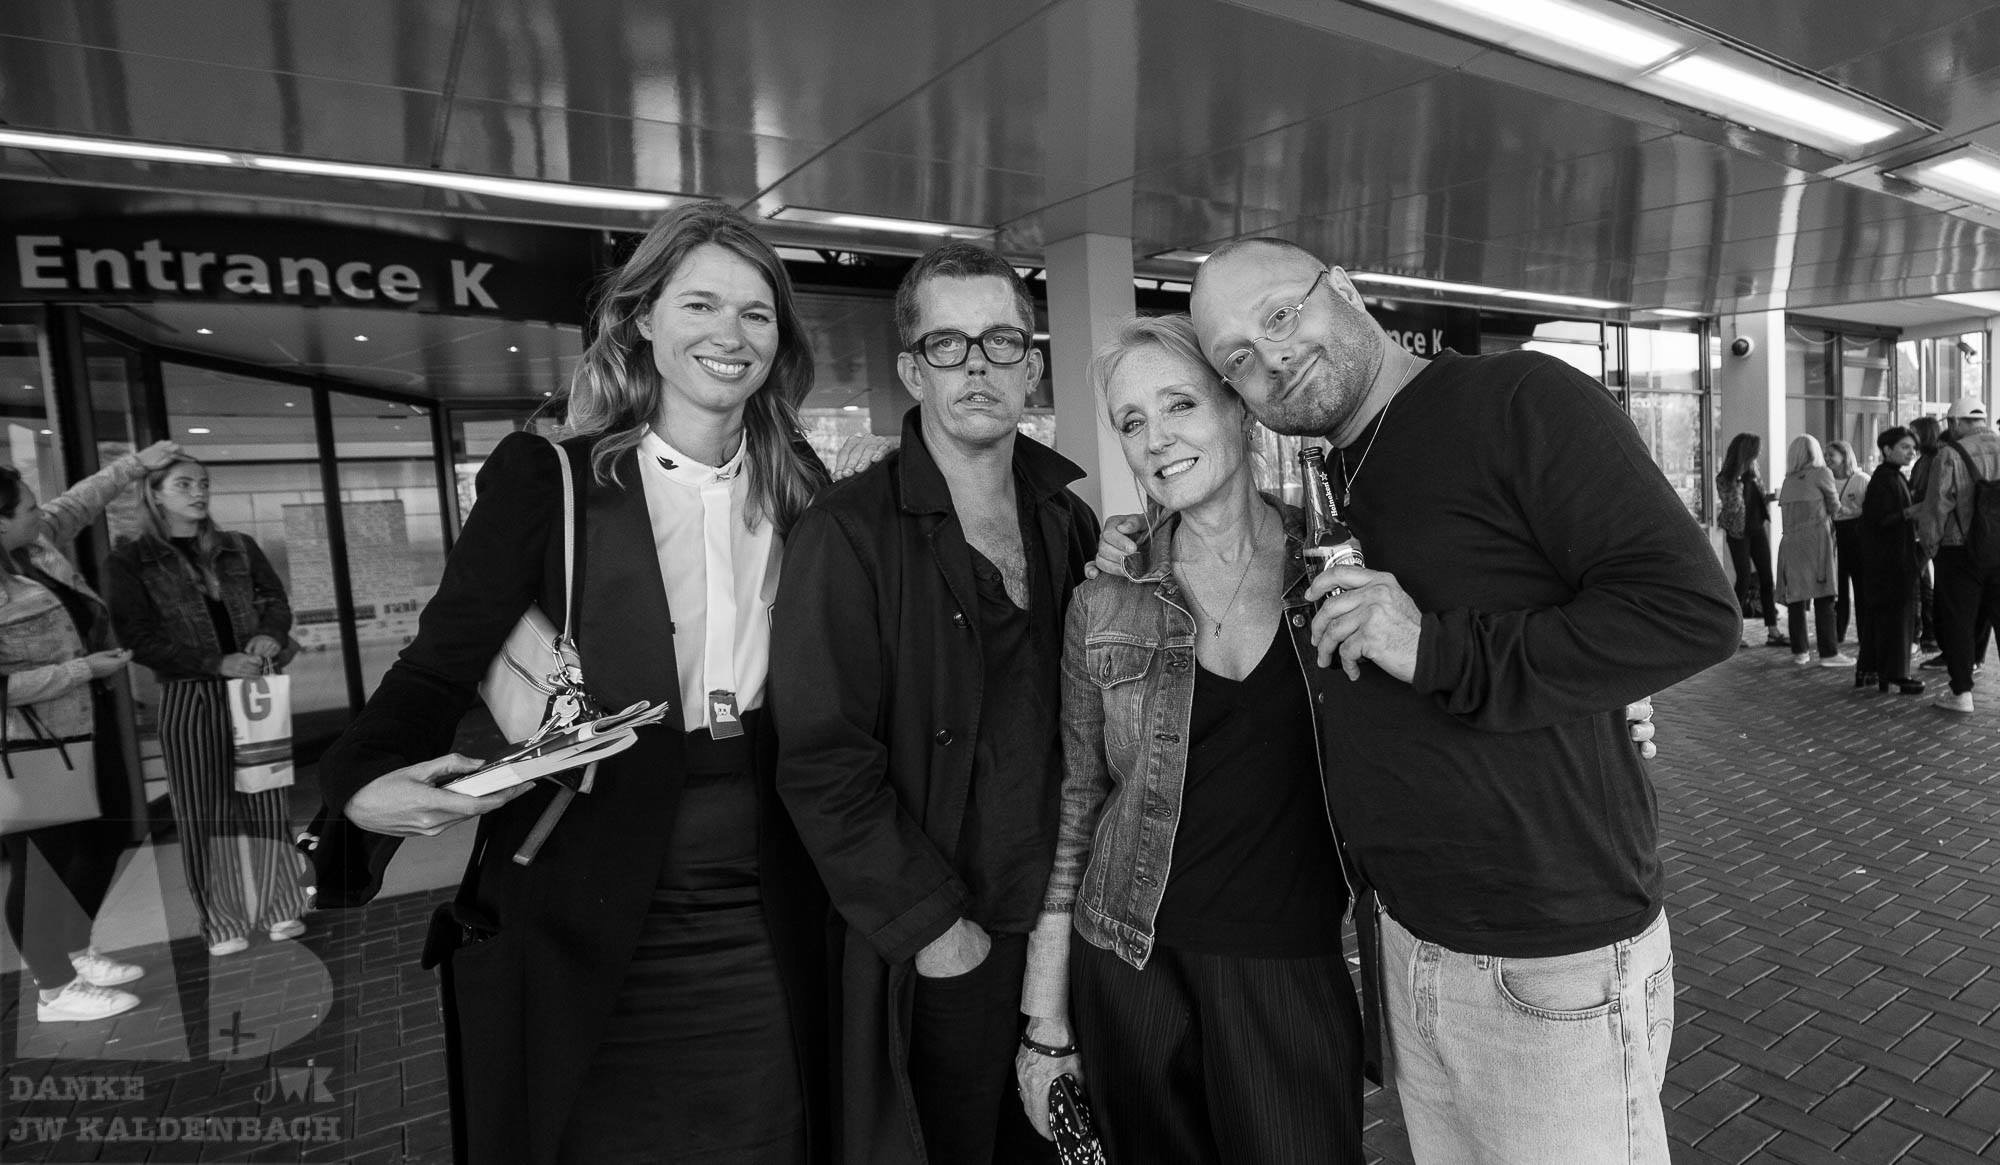 proud teachers Amie Dicke, Niels Klavers (head of the Rietveld fashion department), moi & Oscar Raaijmakers, snapped by JW Kaldenbach